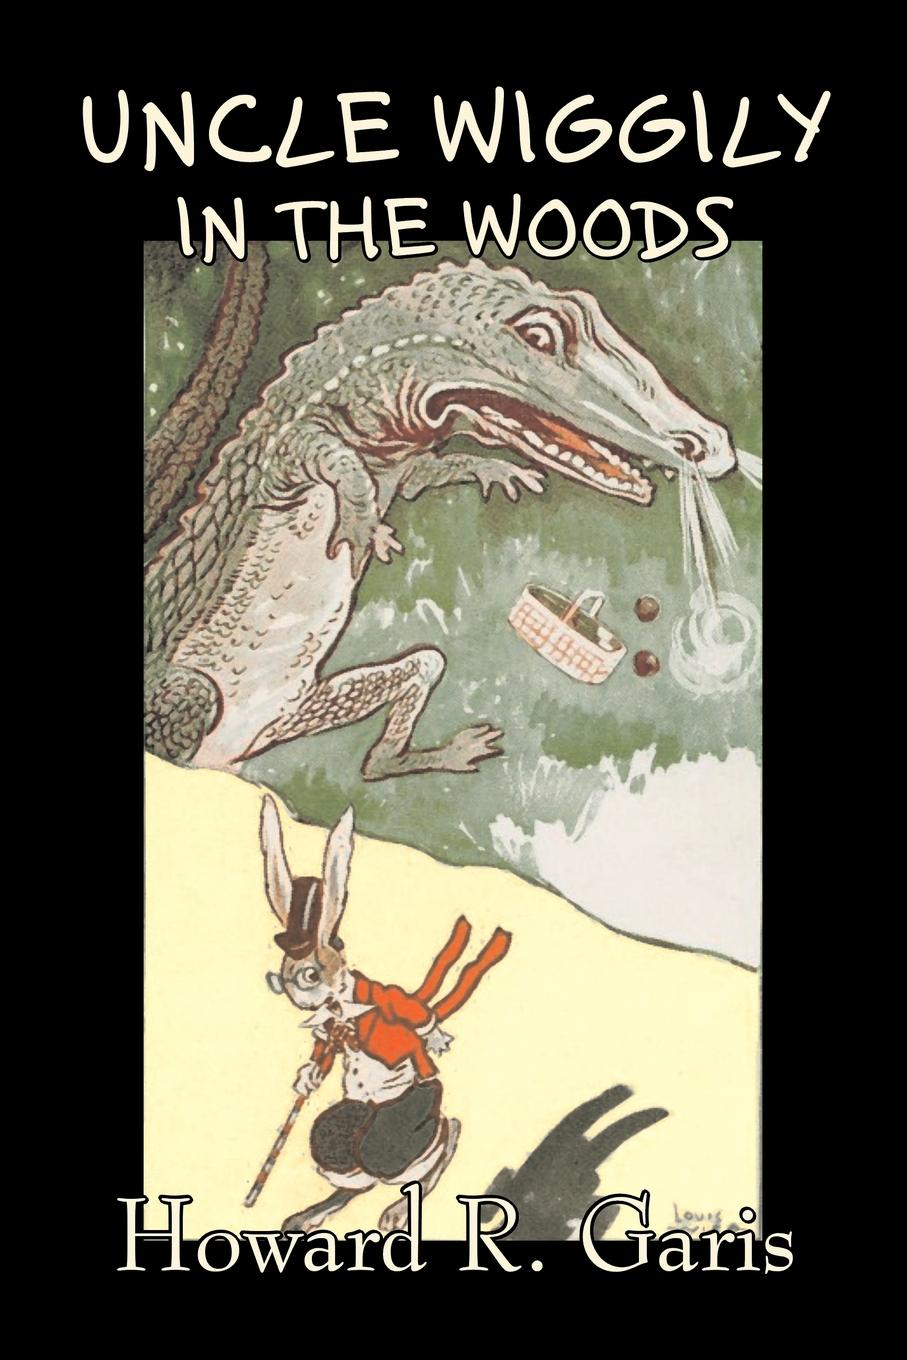 Howard R. Garis Uncle Wiggily in the Woods by Howard R. Garis, Fiction, Fantasy & Magic, Animals